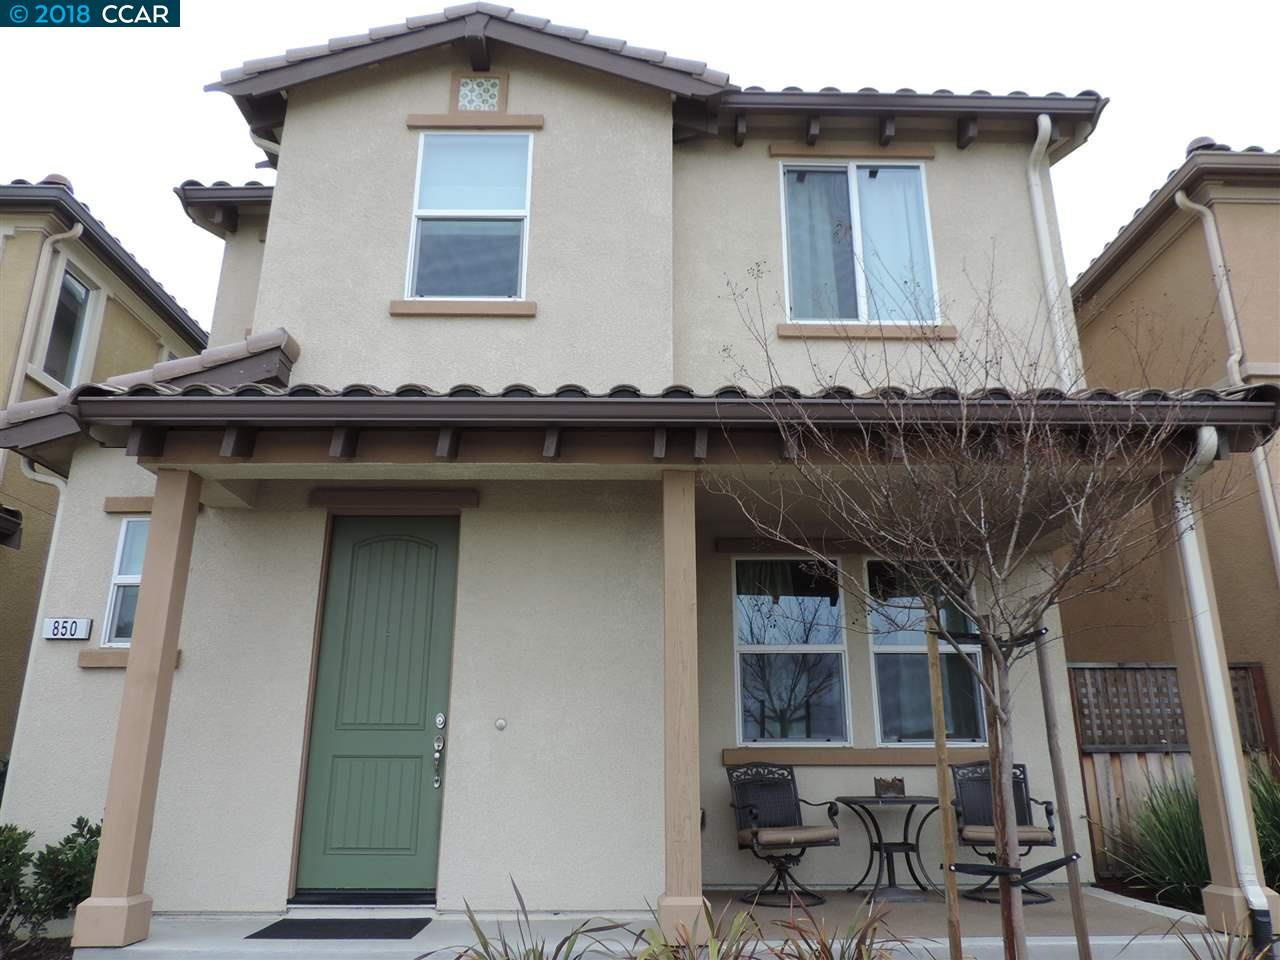 Single Family Home for Rent at 850 Cloud Common 850 Cloud Common Livermore, California 94550 United States